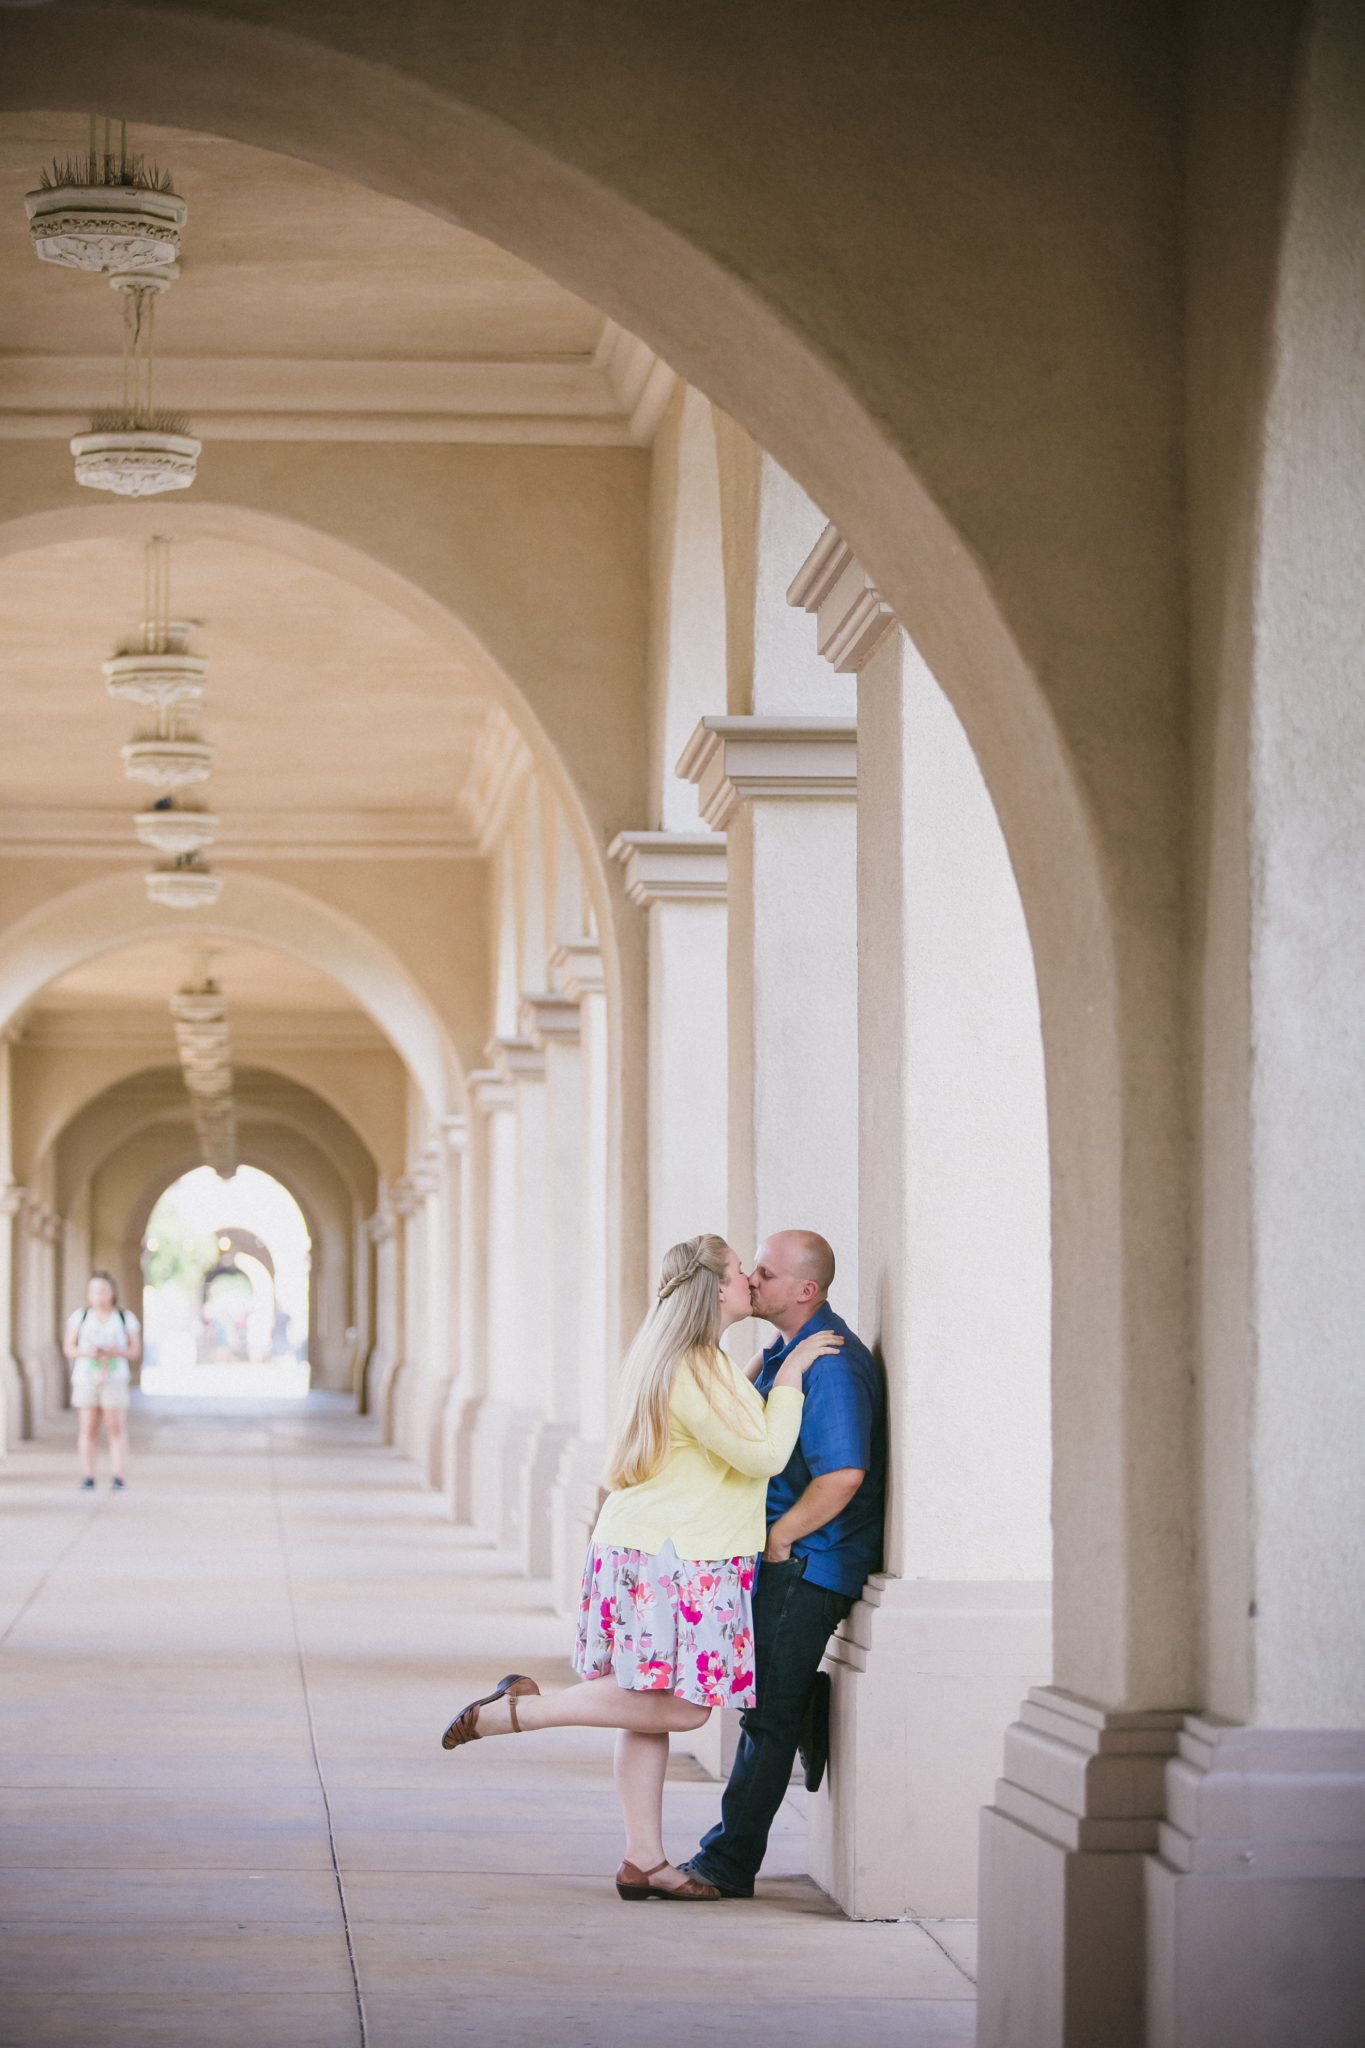 Fiances kissing under an archway at a park in San Diego